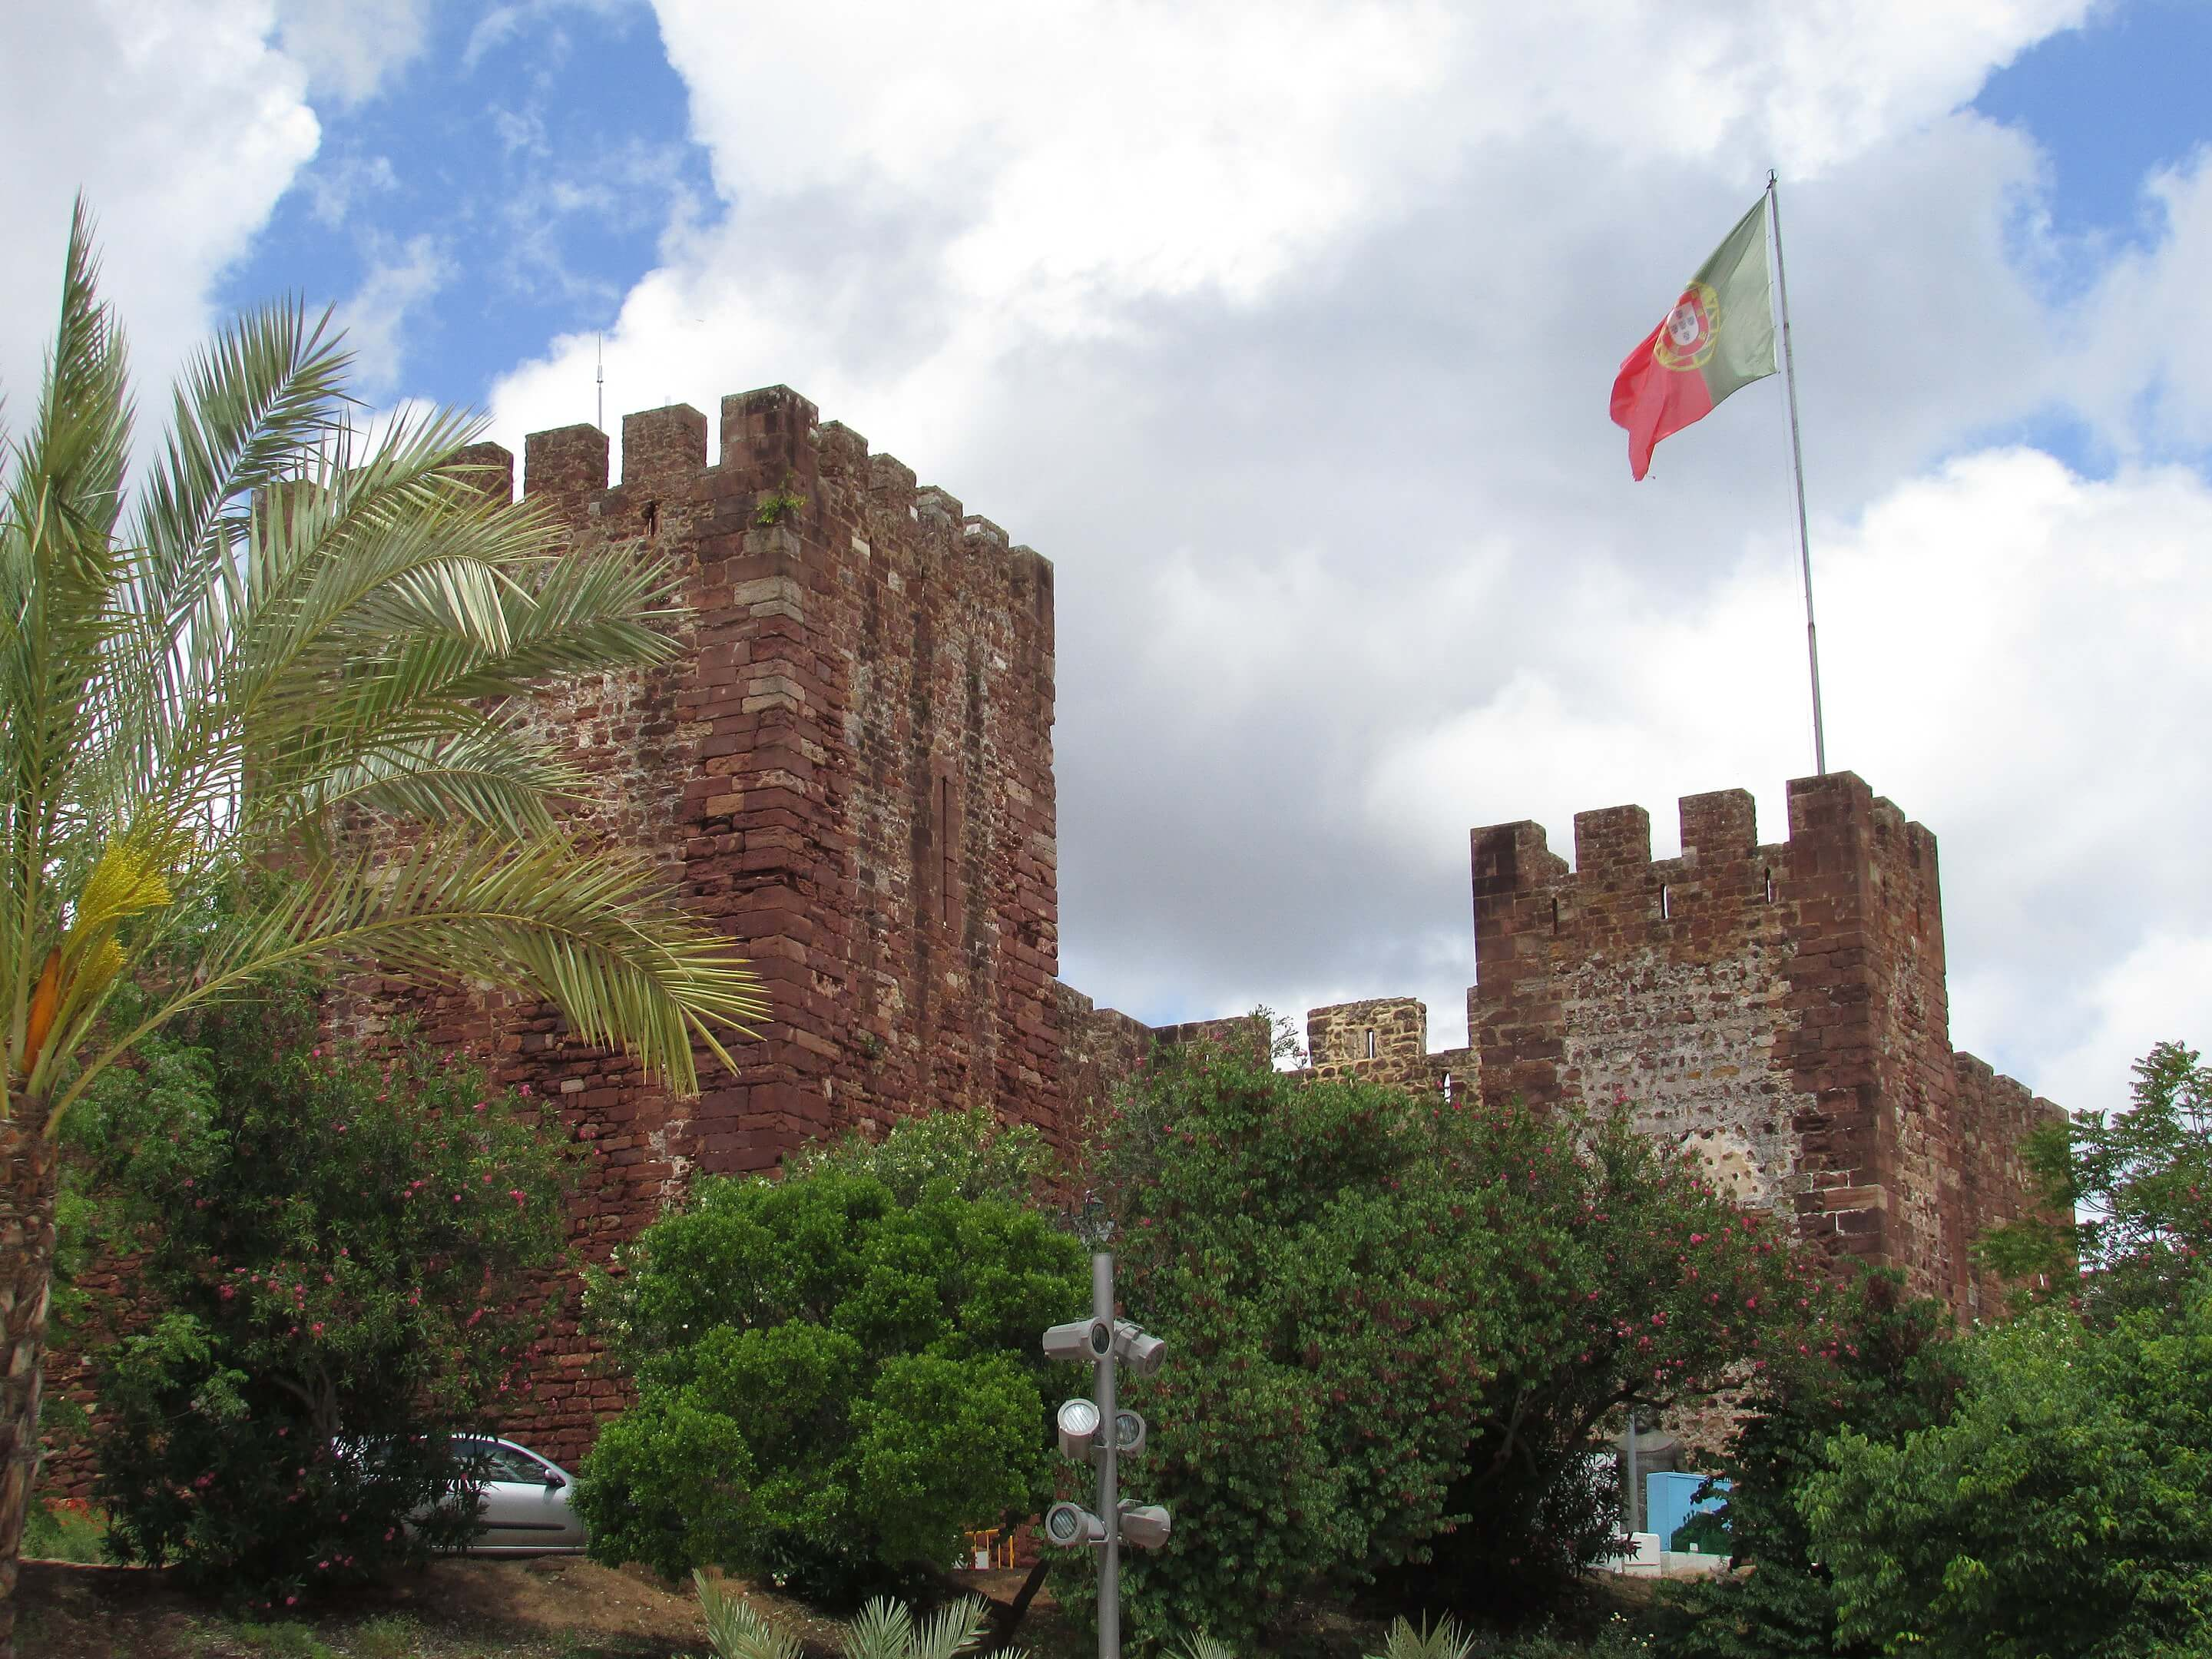 Case vacanze in affitto a Silves